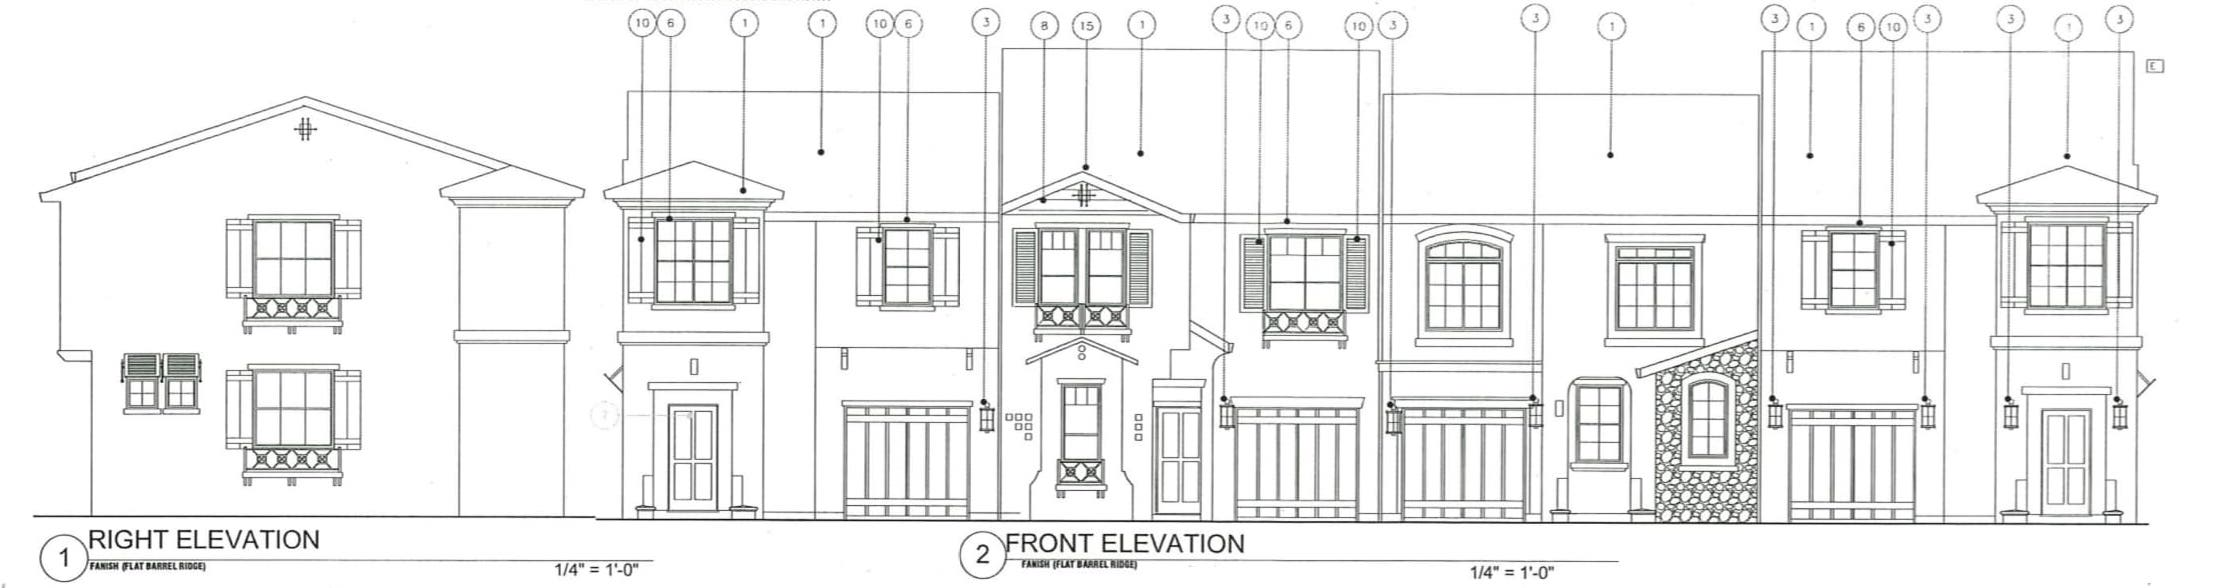 3871 12th Avenue Front Elevation